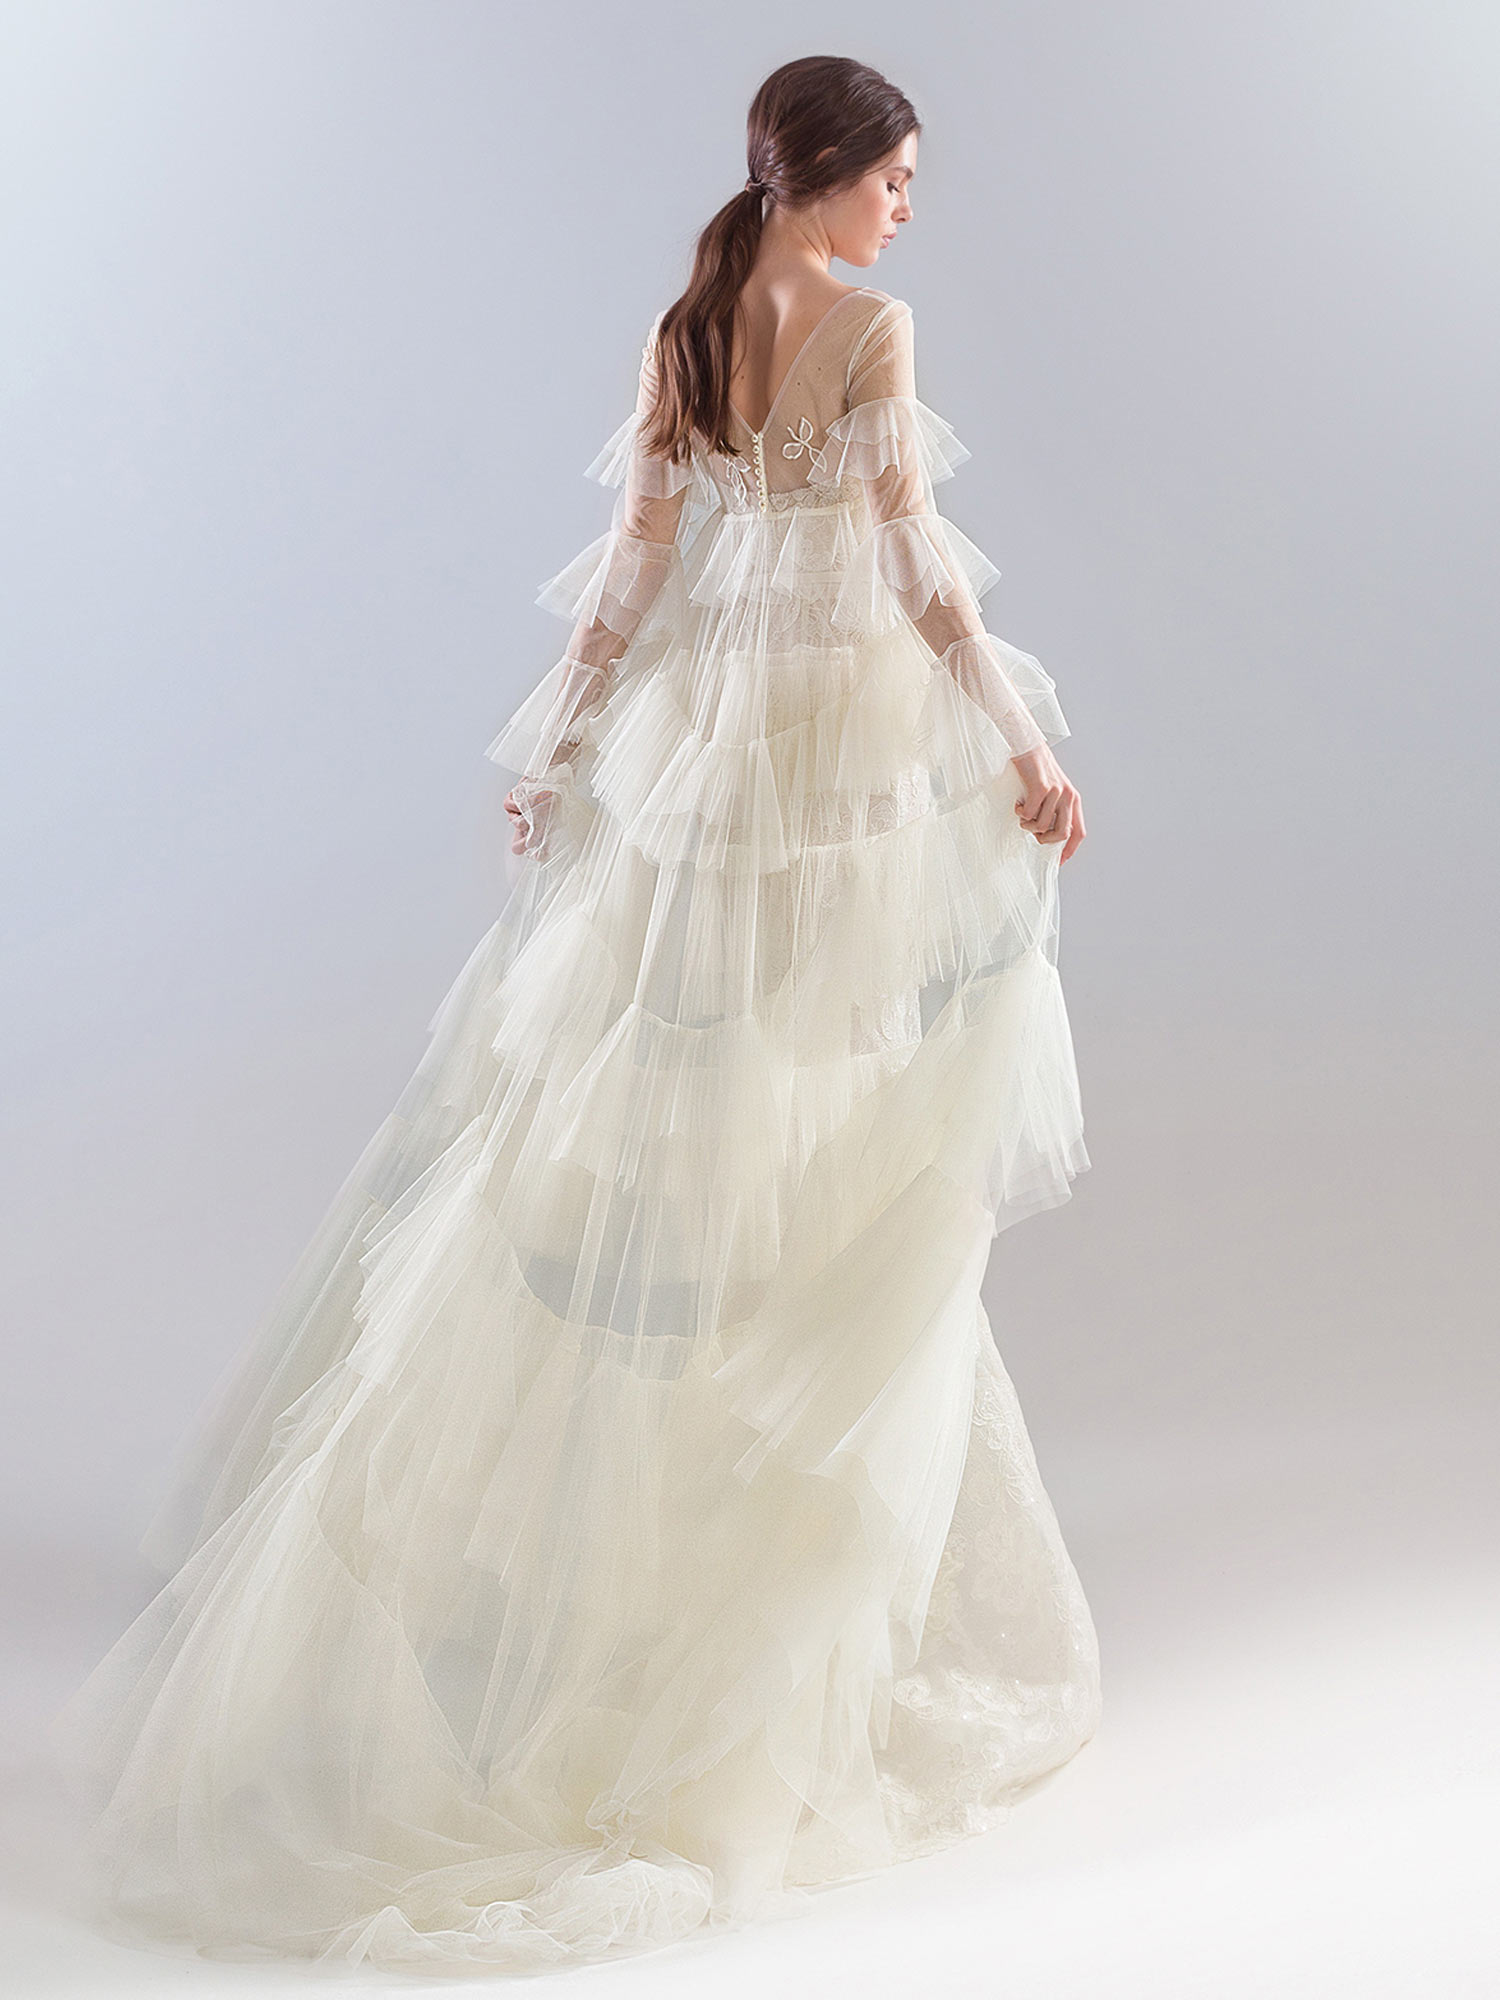 Style #1927L, available in dark ivory (photo), ivory; Style #1927-7 (cape), available in ivory